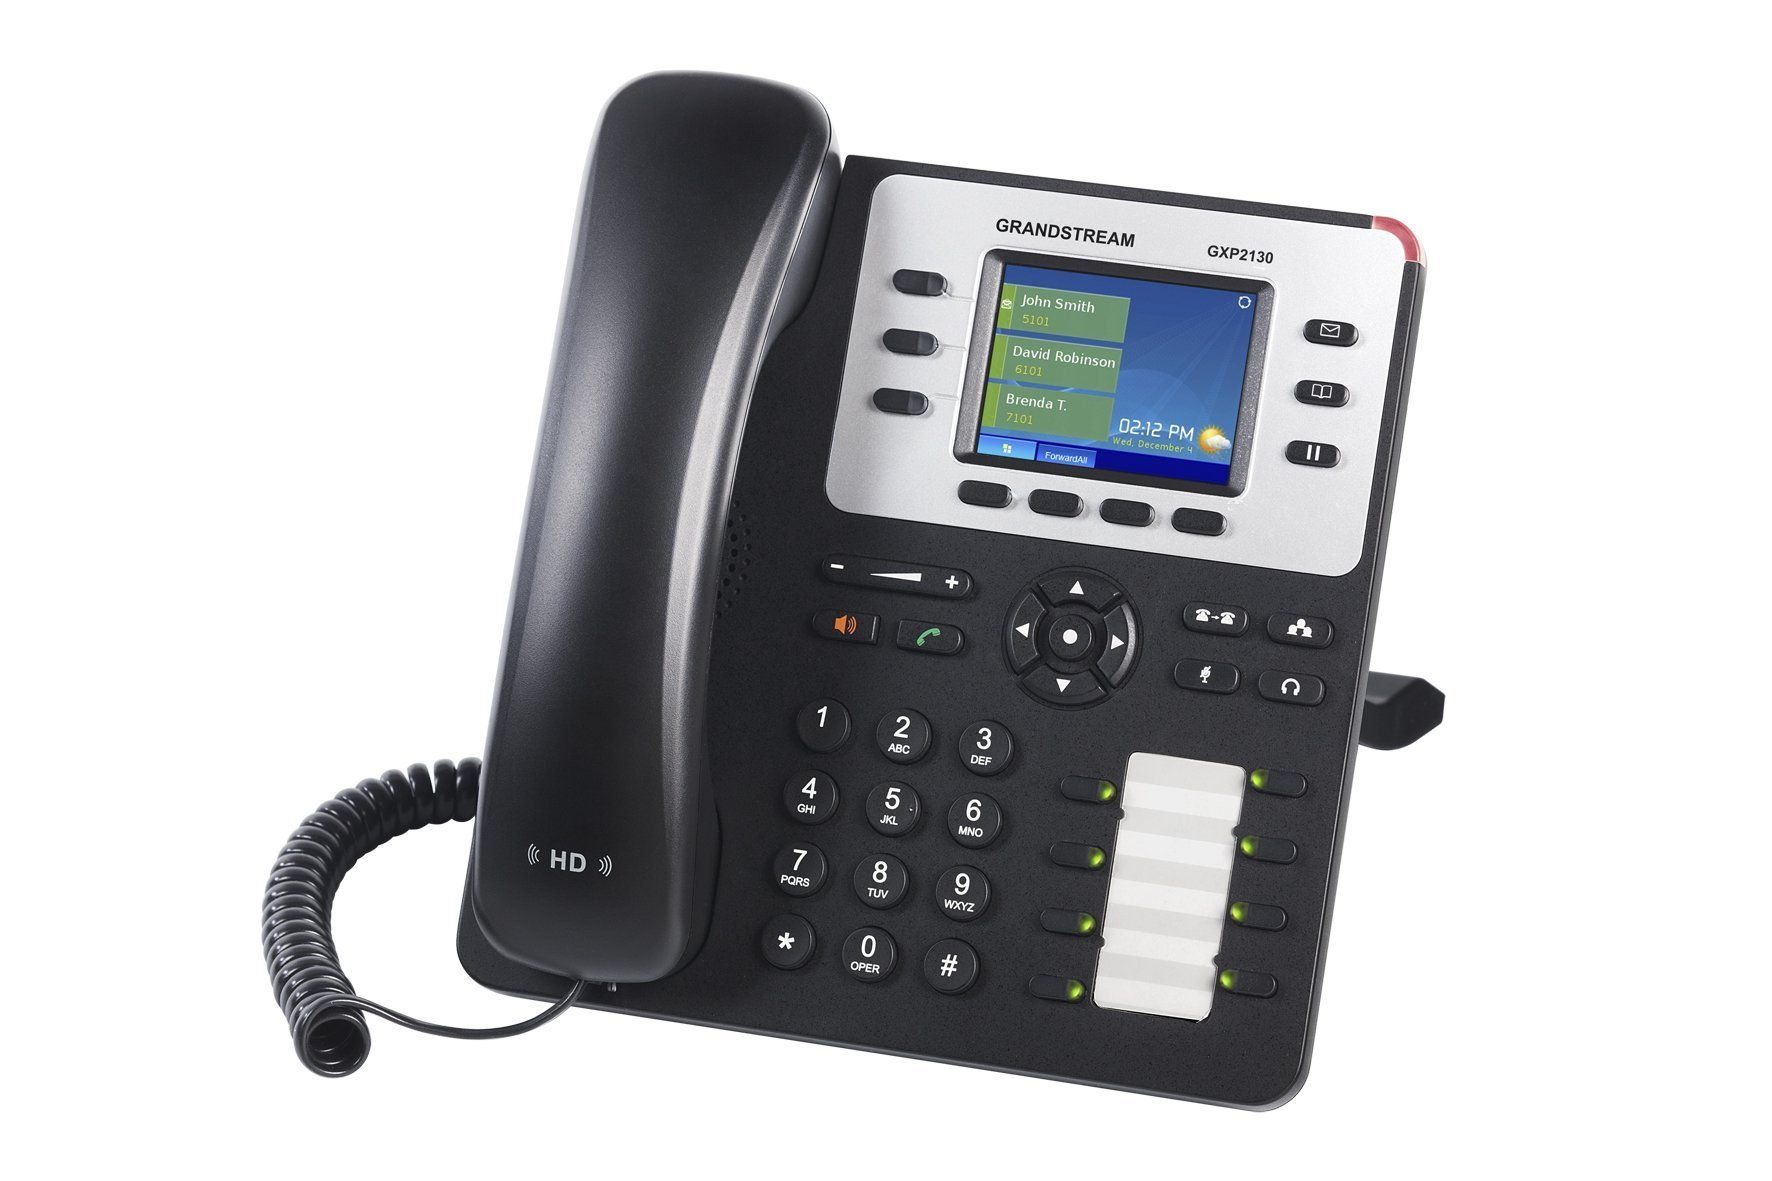 Grandstream Enterprise IP Telephone GXP2130 (2.8'' LCD, POE, Power Supply Included) by Grandstream